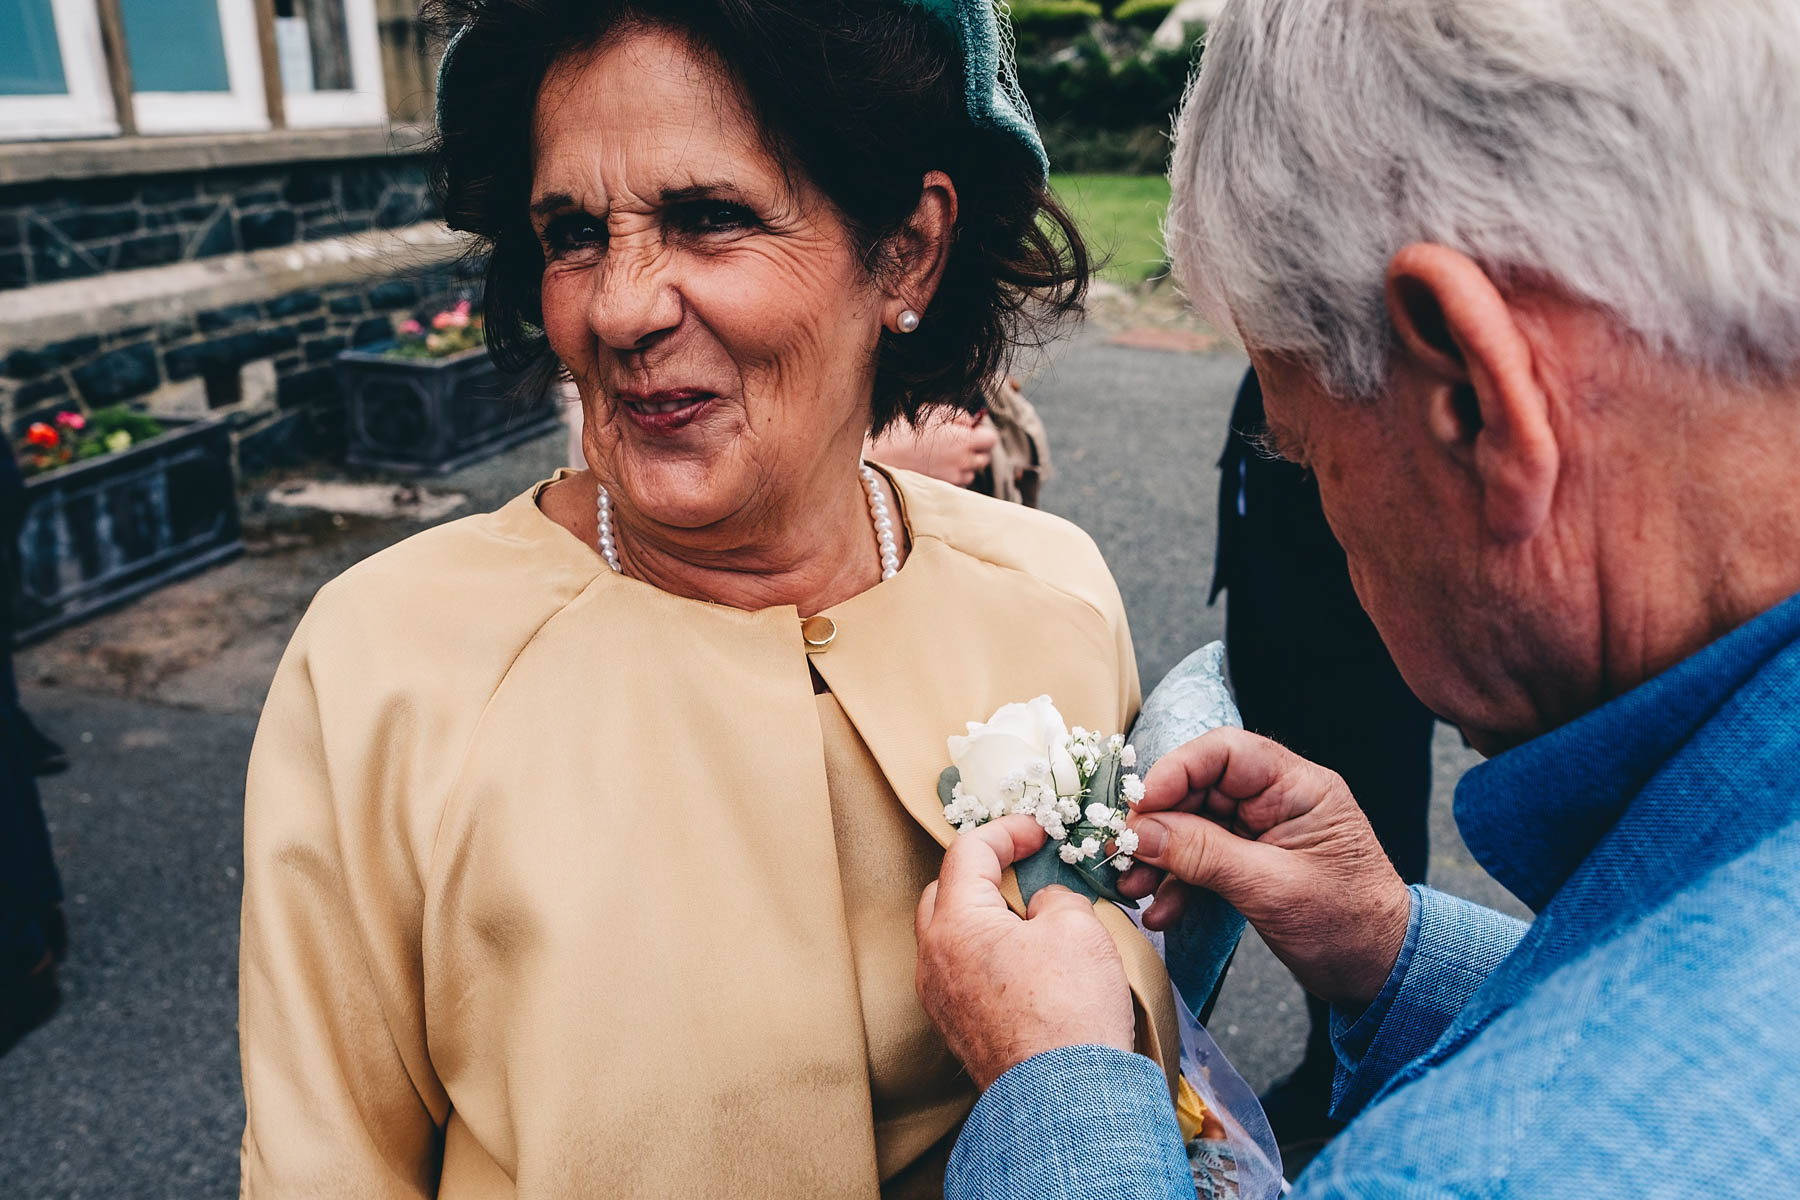 Wedding guest smiles when friend adjusts buttonhole